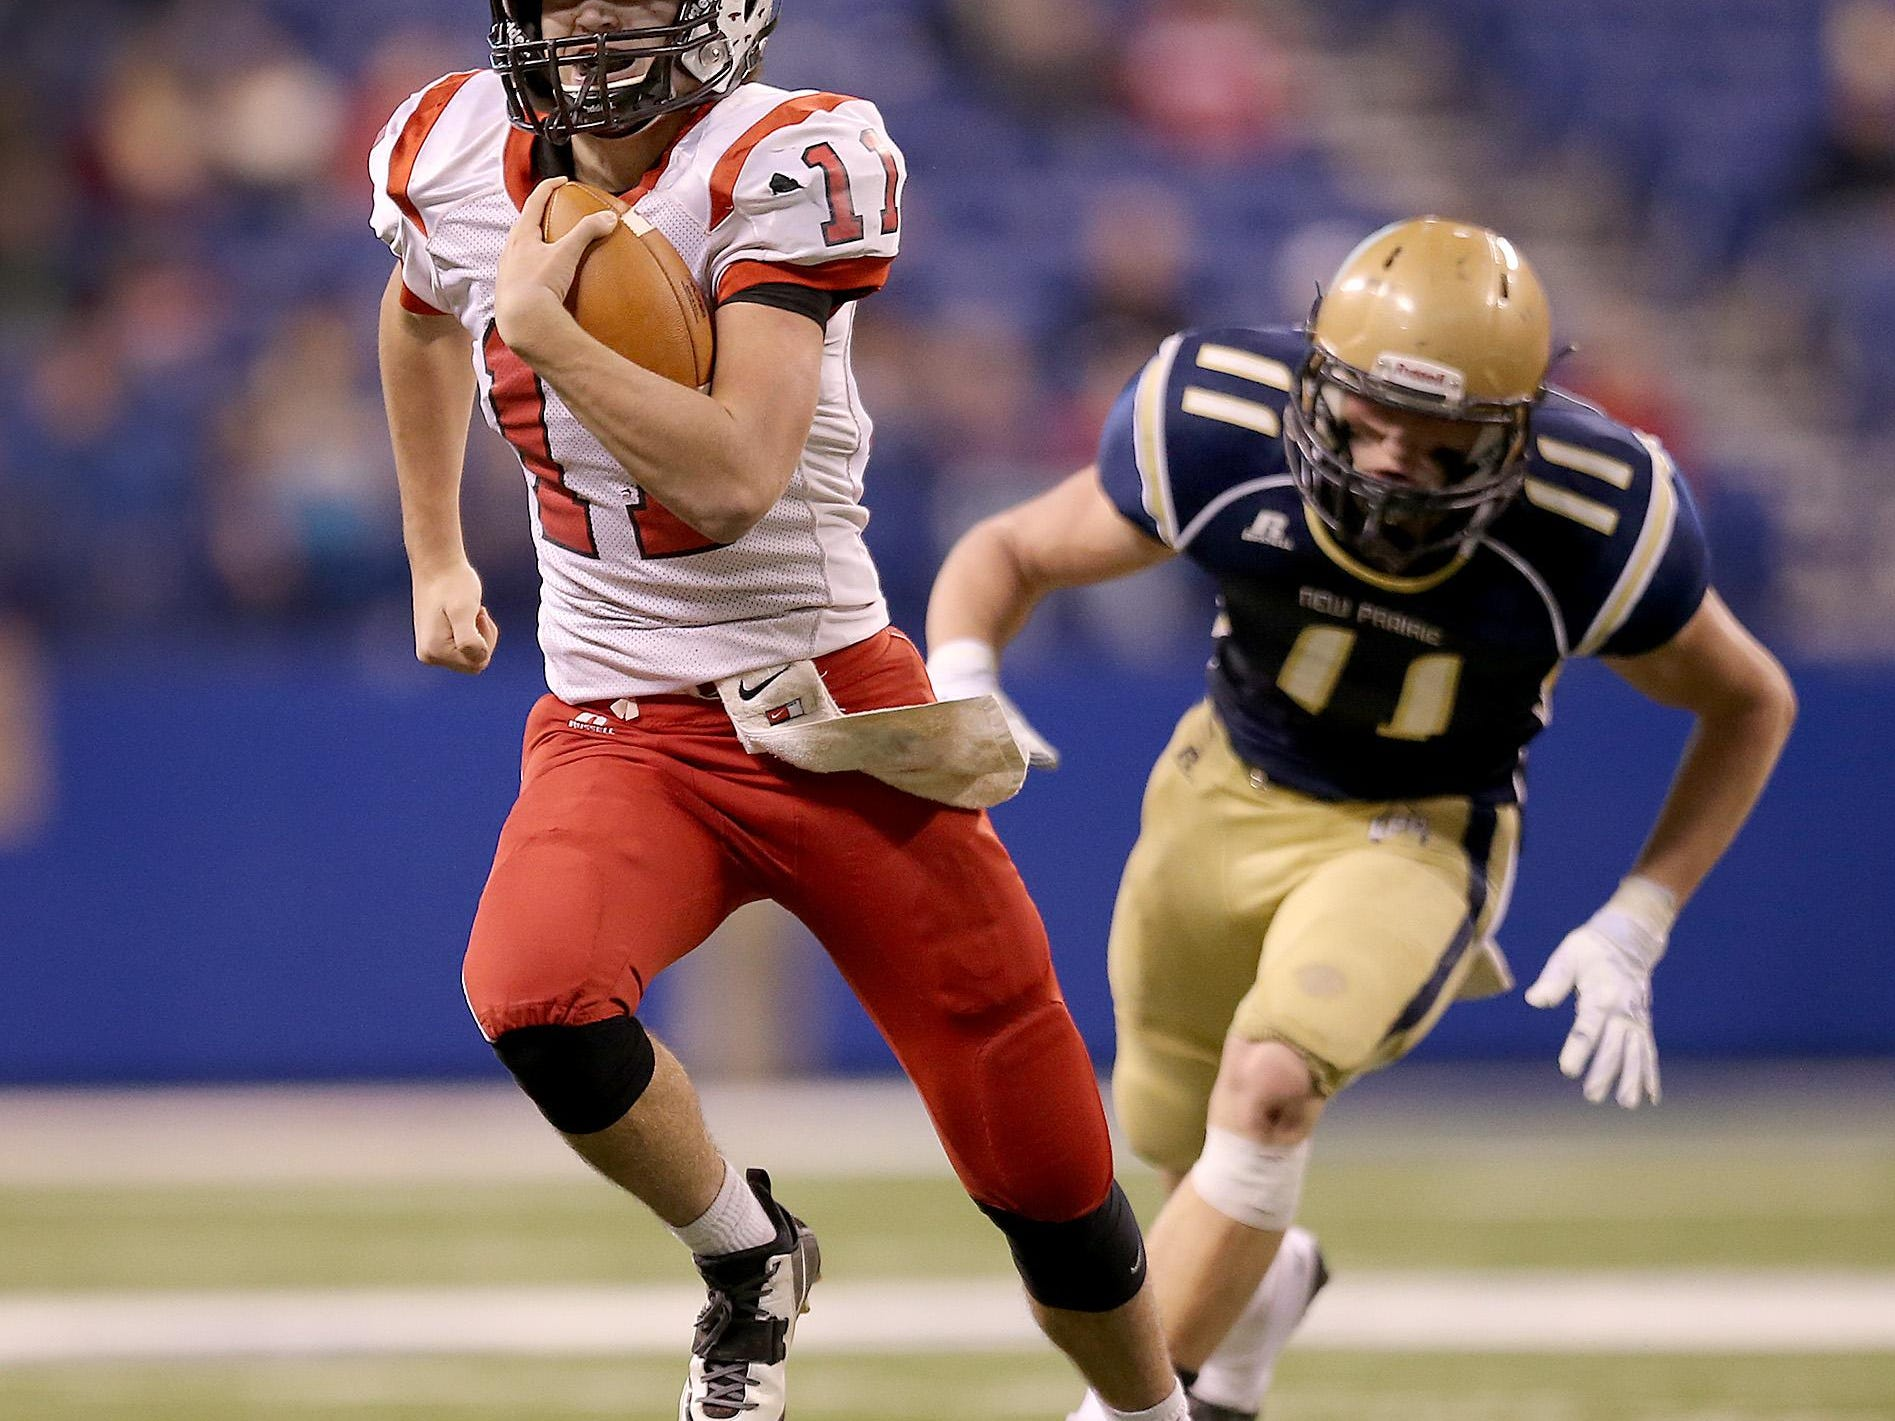 New Palestine's QB Alex Neligh runs by the New Prairie's defense for a touchdown in the first half of their game.The New Palestine Dragons took on the New Prairie Cougars in the IHSAA Class 4A State Football Championship game Friday, November 28, 2014, afternoon at Lucas Oil Stadium.